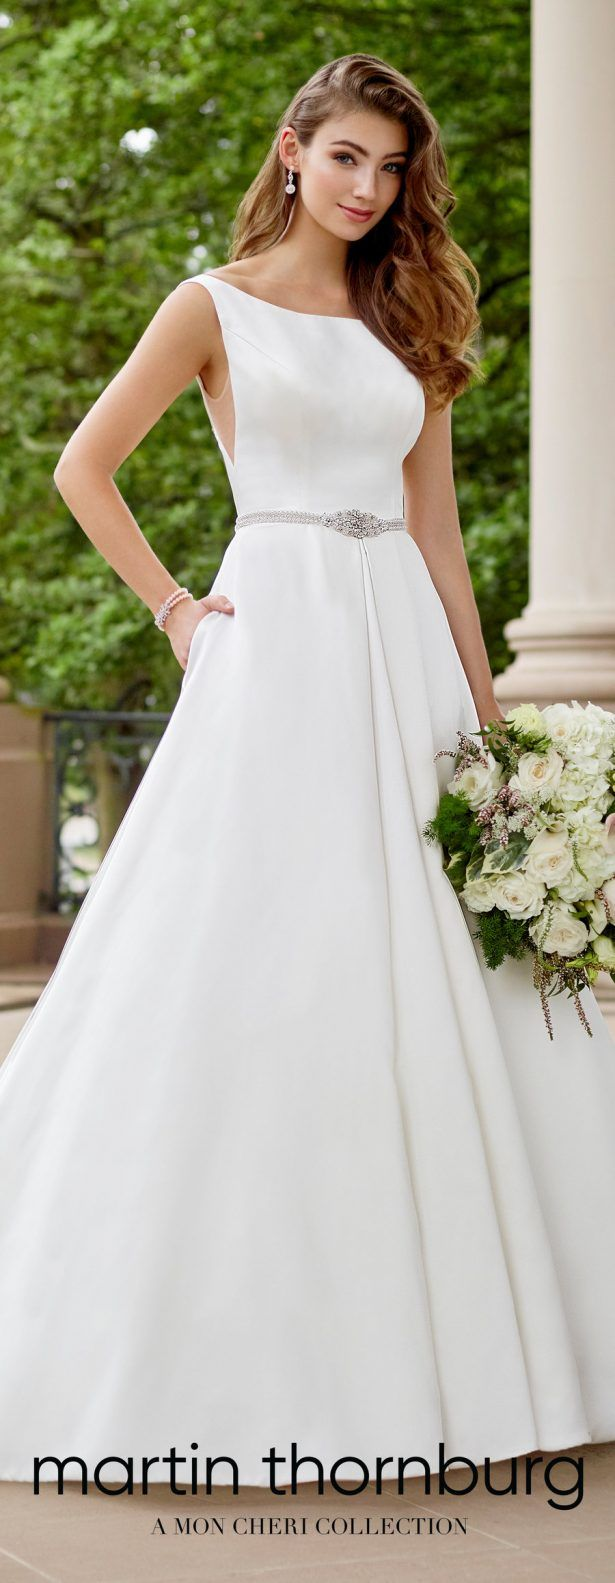 Dresses for wedding reception for bride  World Exclusive Wedding Dresses Spring  by Martin Thornburg a